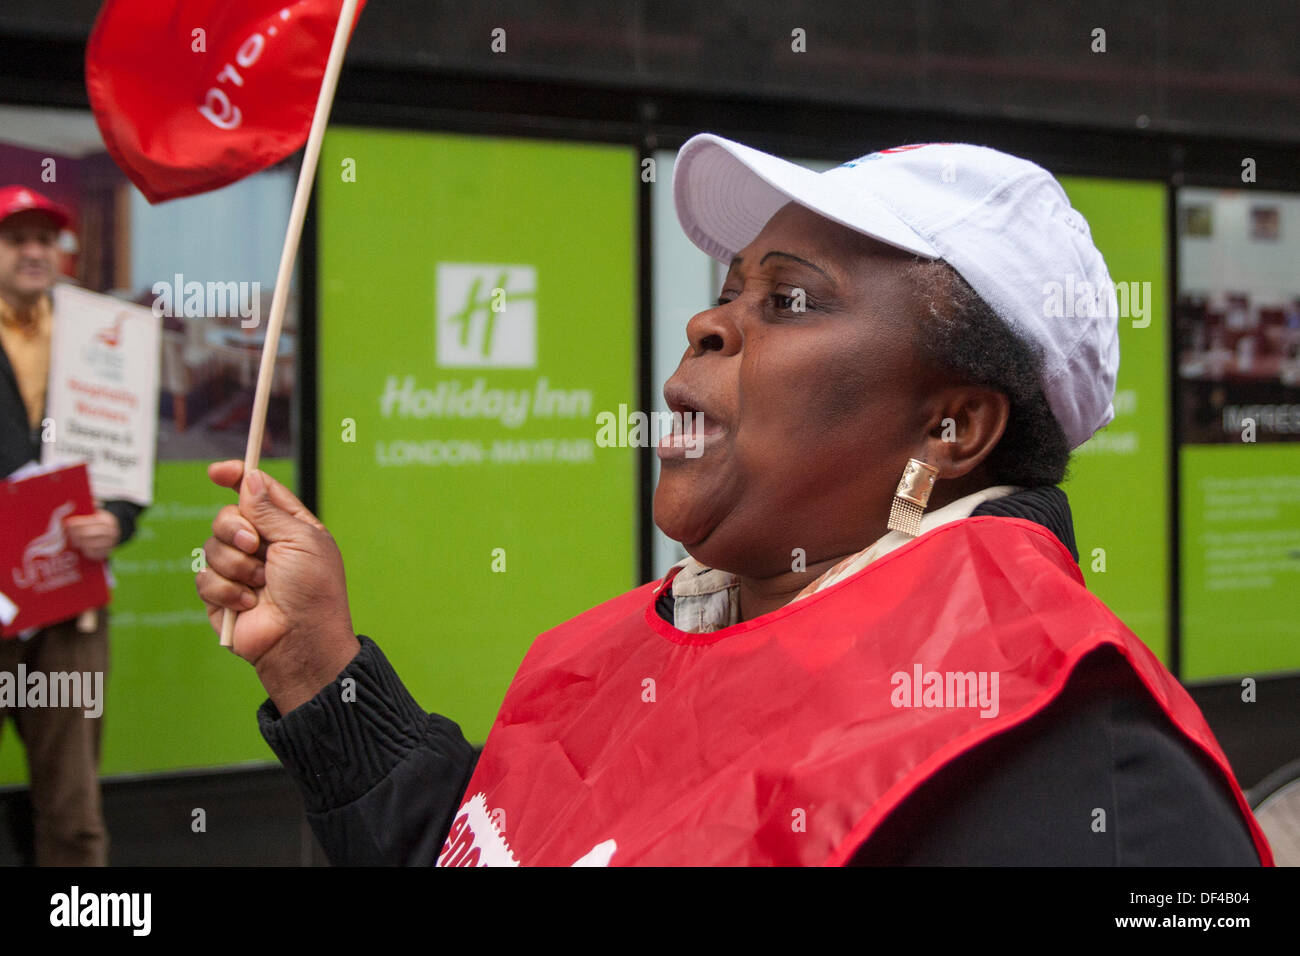 London, UK. 27th Sep, 2013.  Unite The Union demonstrates on World Tourism Day outside the Radisson May Fair hotel and the Holiday Inn in Mayfair demanding that the hotel groups pay the London Living Wage of £8.55 per hour to their lowest paid workers. Credit:  Paul Davey/Alamy Live News - Stock Image